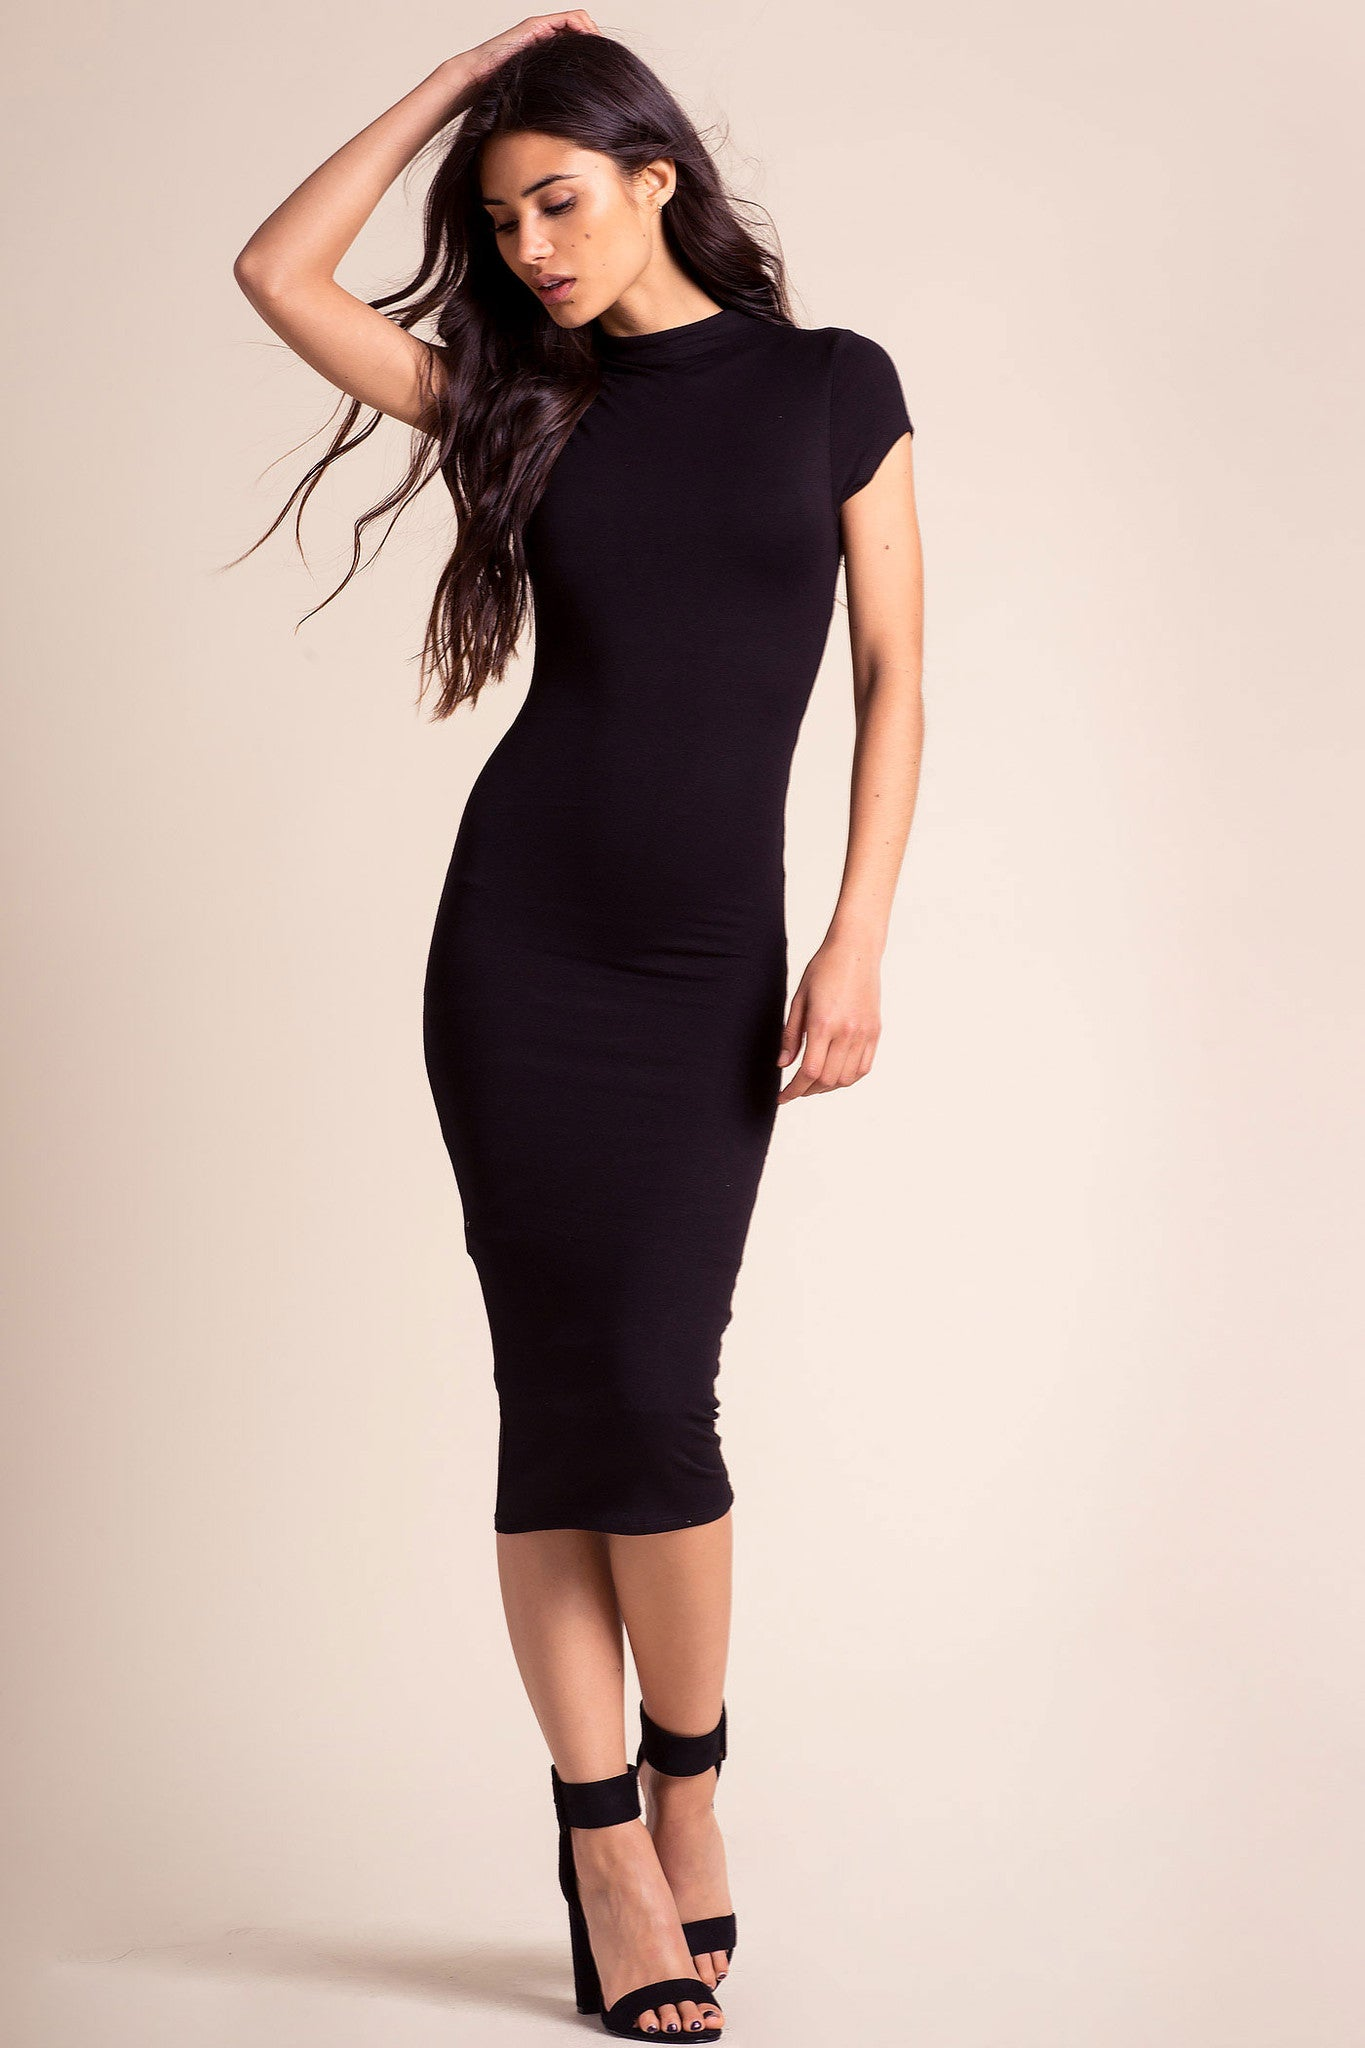 womens-little-black-party-dress-sexy-cocktail-midi-dresses-basic-jersey-dresses-under-$50